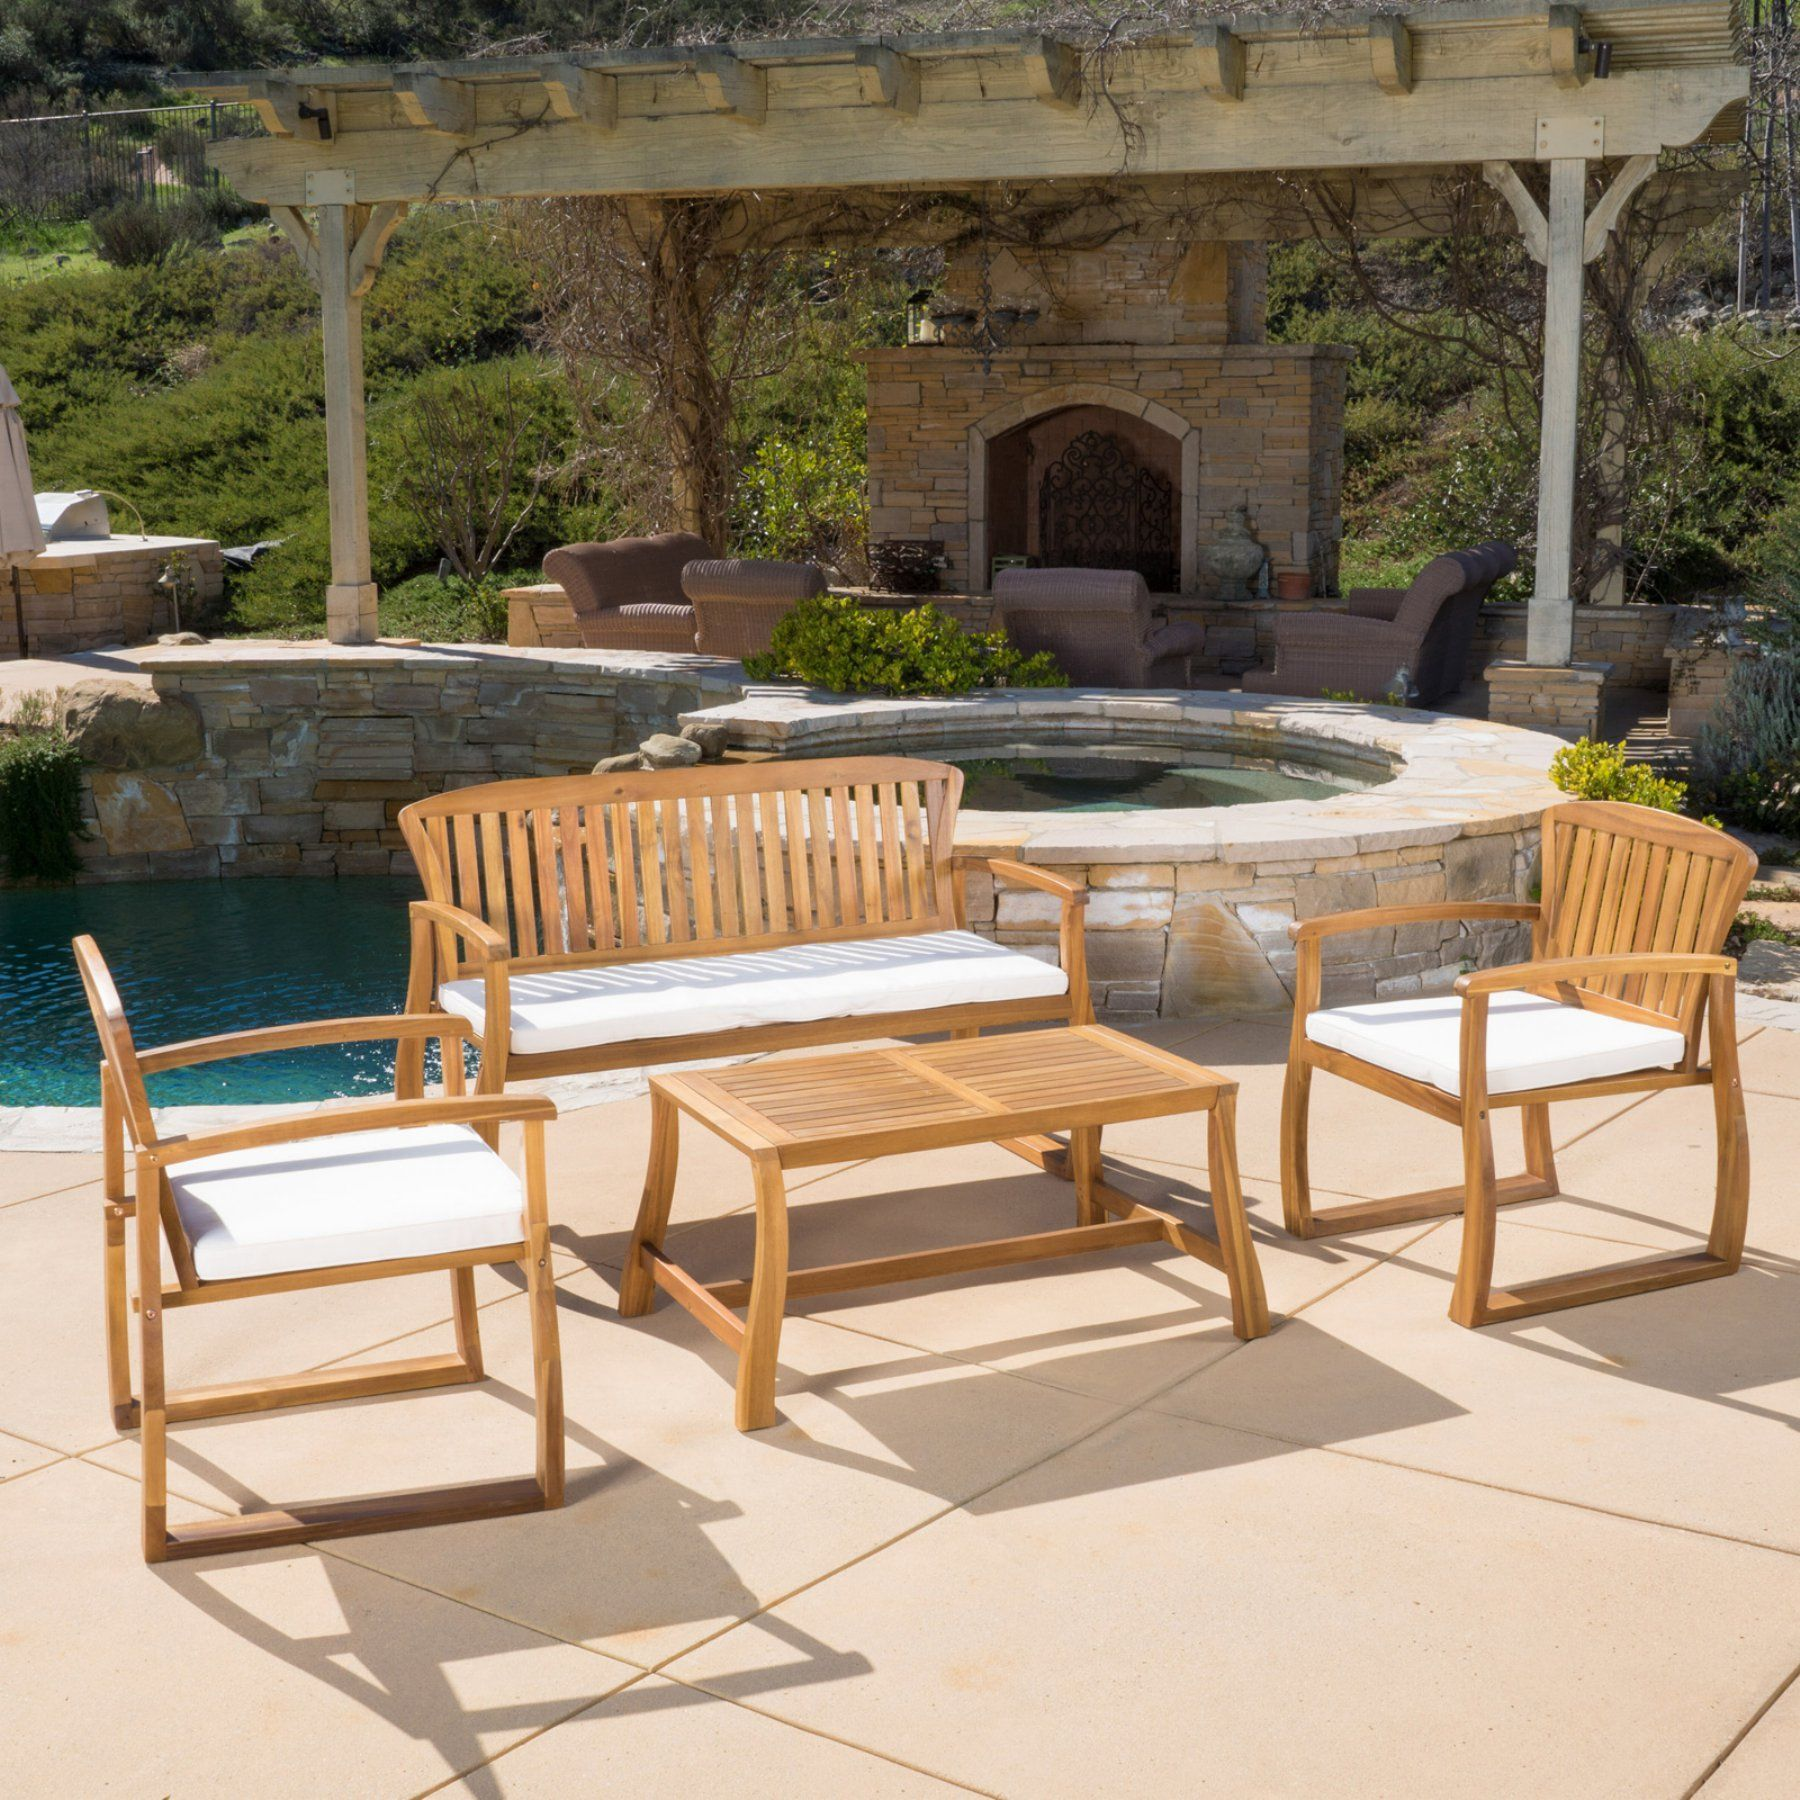 Outdoor best selling home decor furniture leah wood piece patio